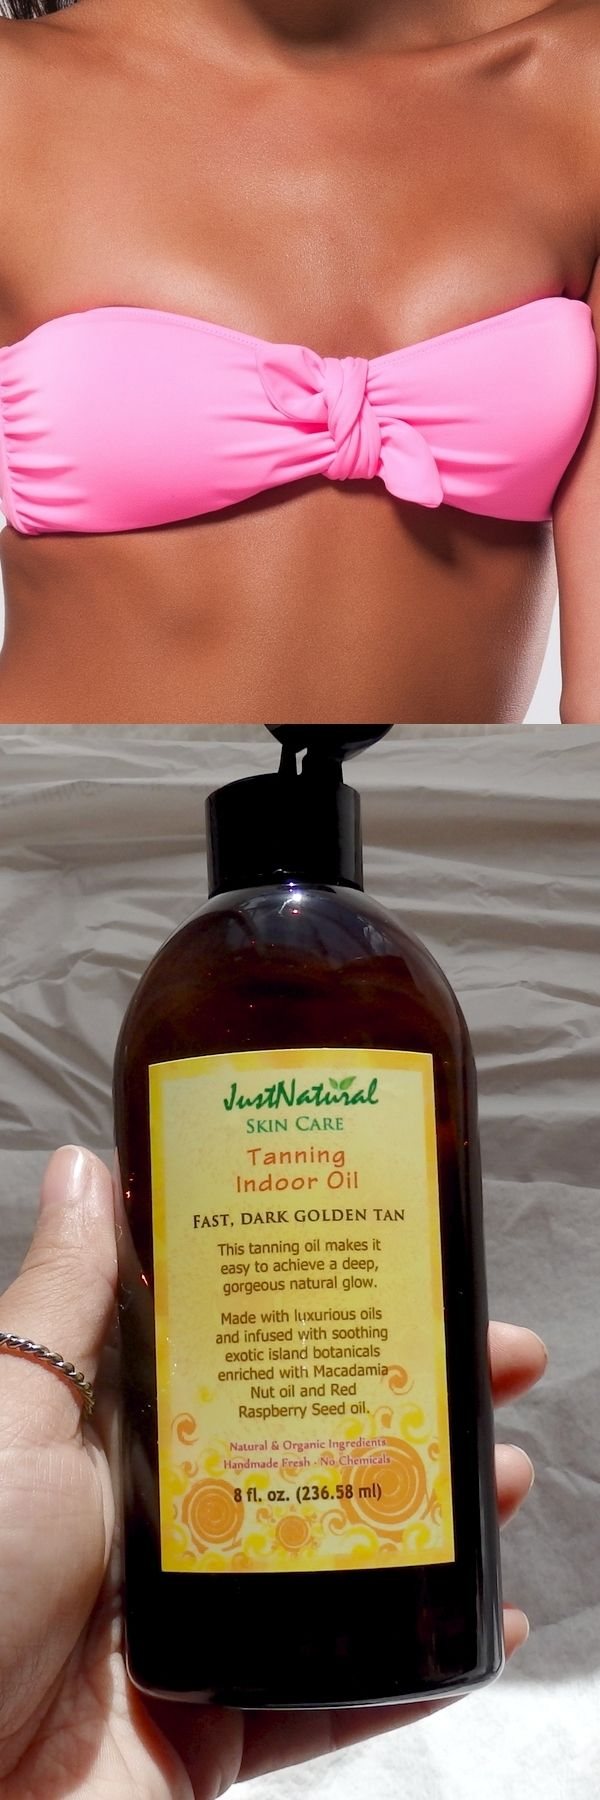 Just Natural Skin Care Indoor Tanning Oil